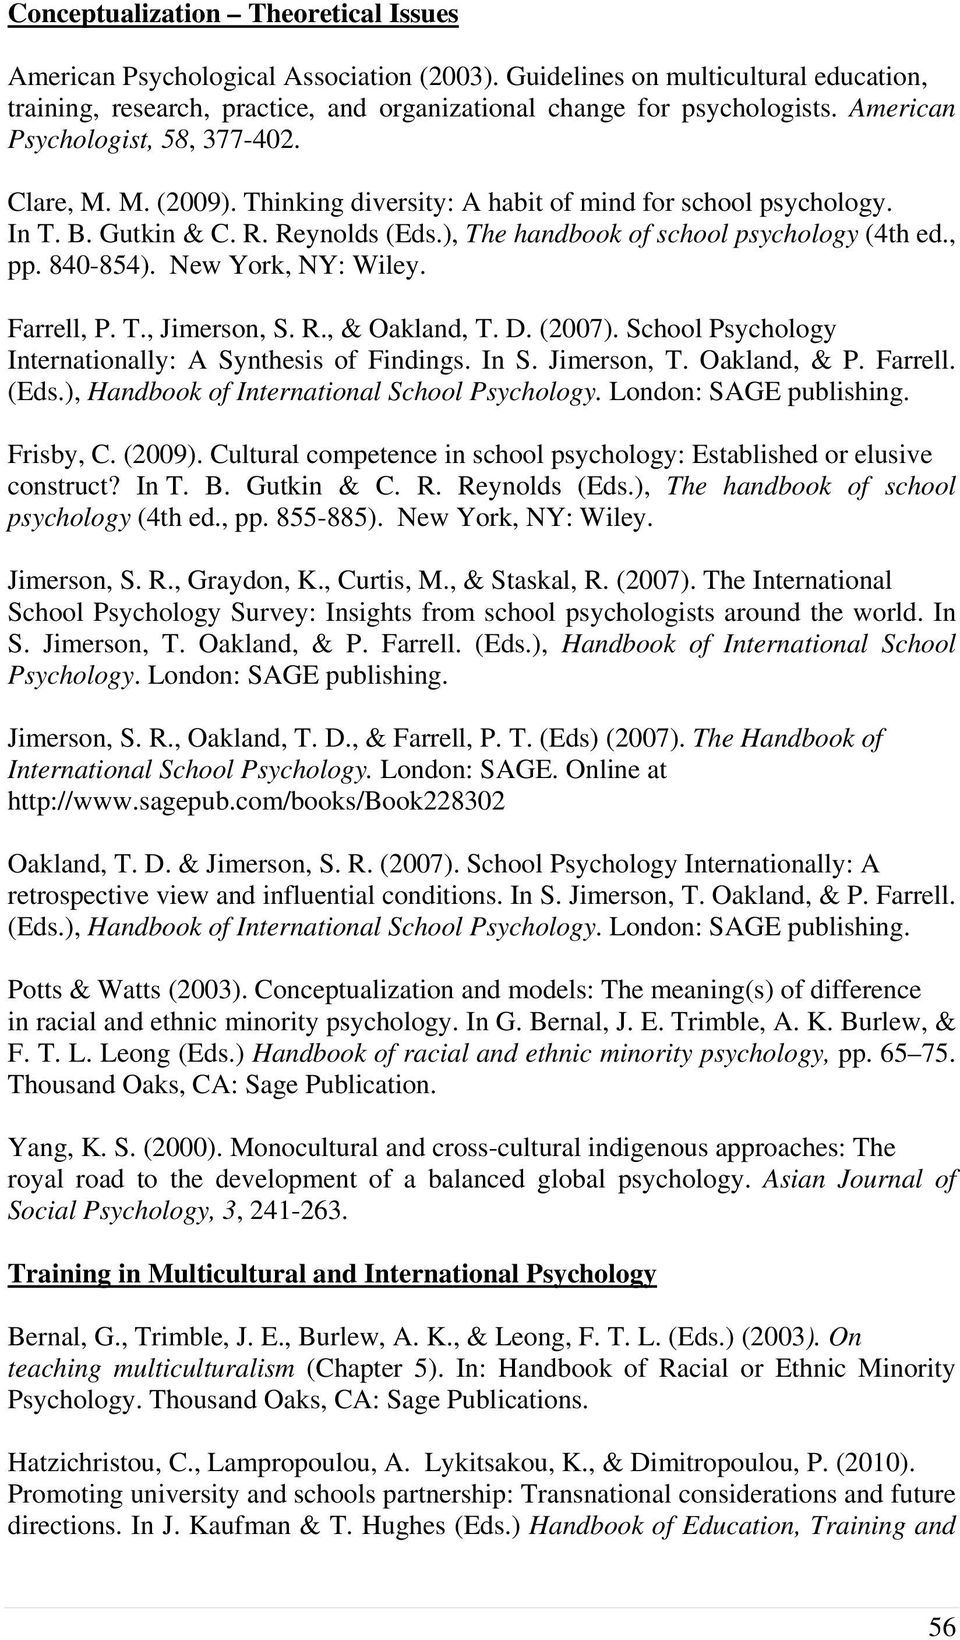 , pp. 840-854). New York, NY: Wiley. Farrell, P. T., Jimerson, S. R., & Oakland, T. D. (2007). School Psychology Internationally: A Synthesis of Findings. In S. Jimerson, T. Oakland, & P. Farrell. (Eds.